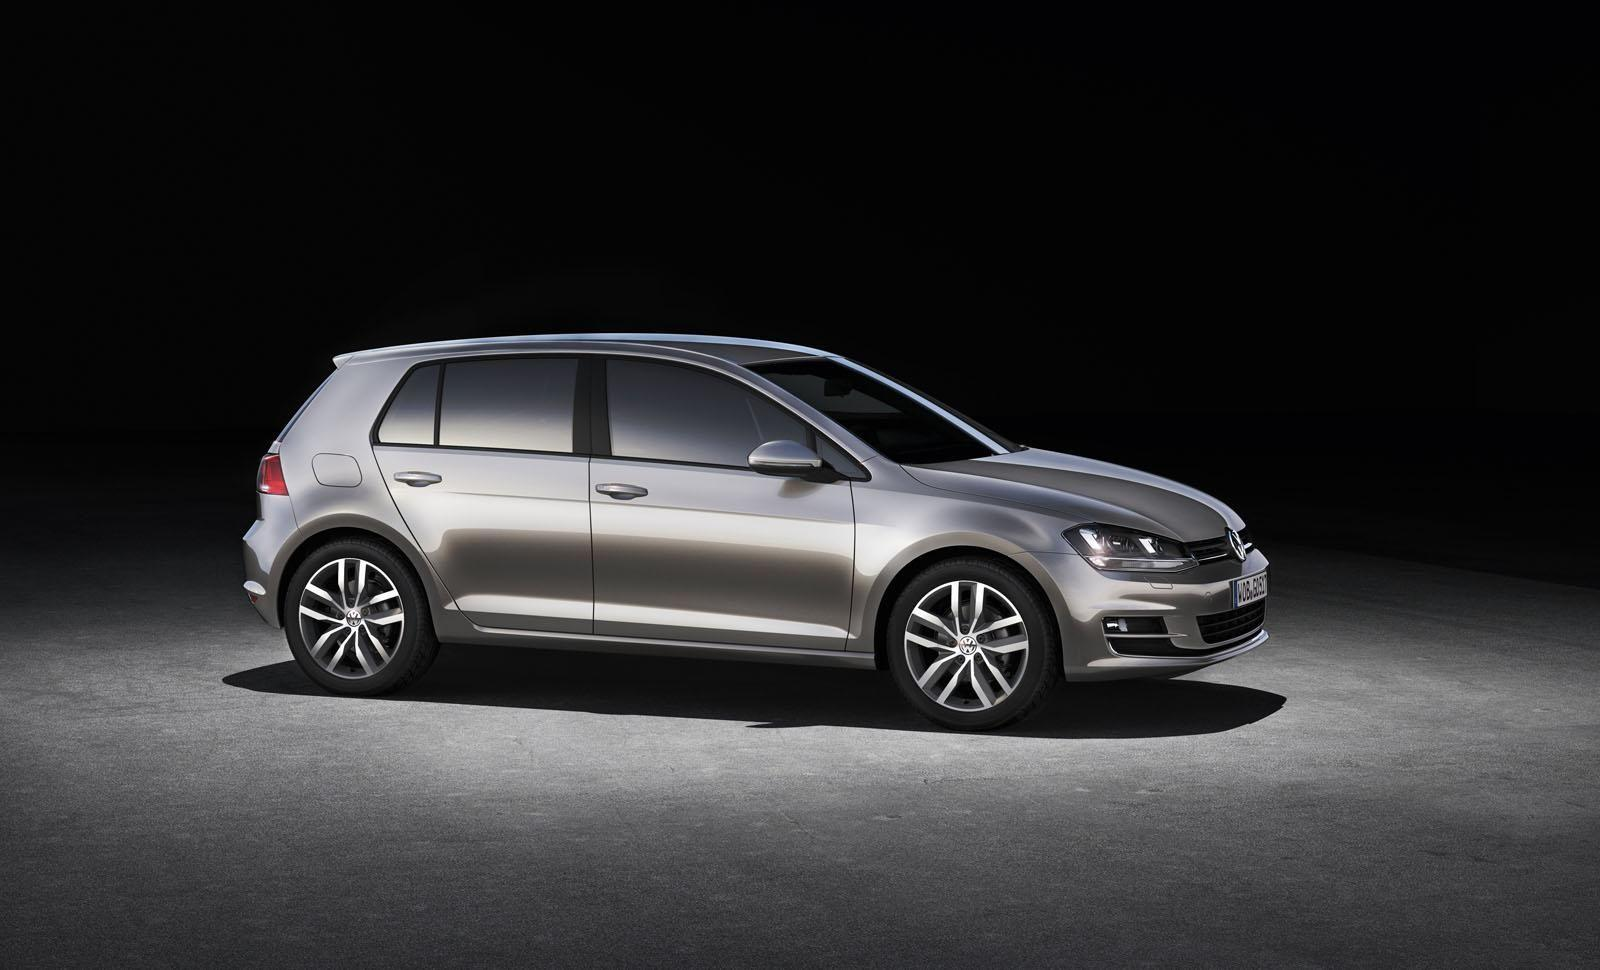 Volkswagen Golf VII Official Specs and Images Released - autoevolution